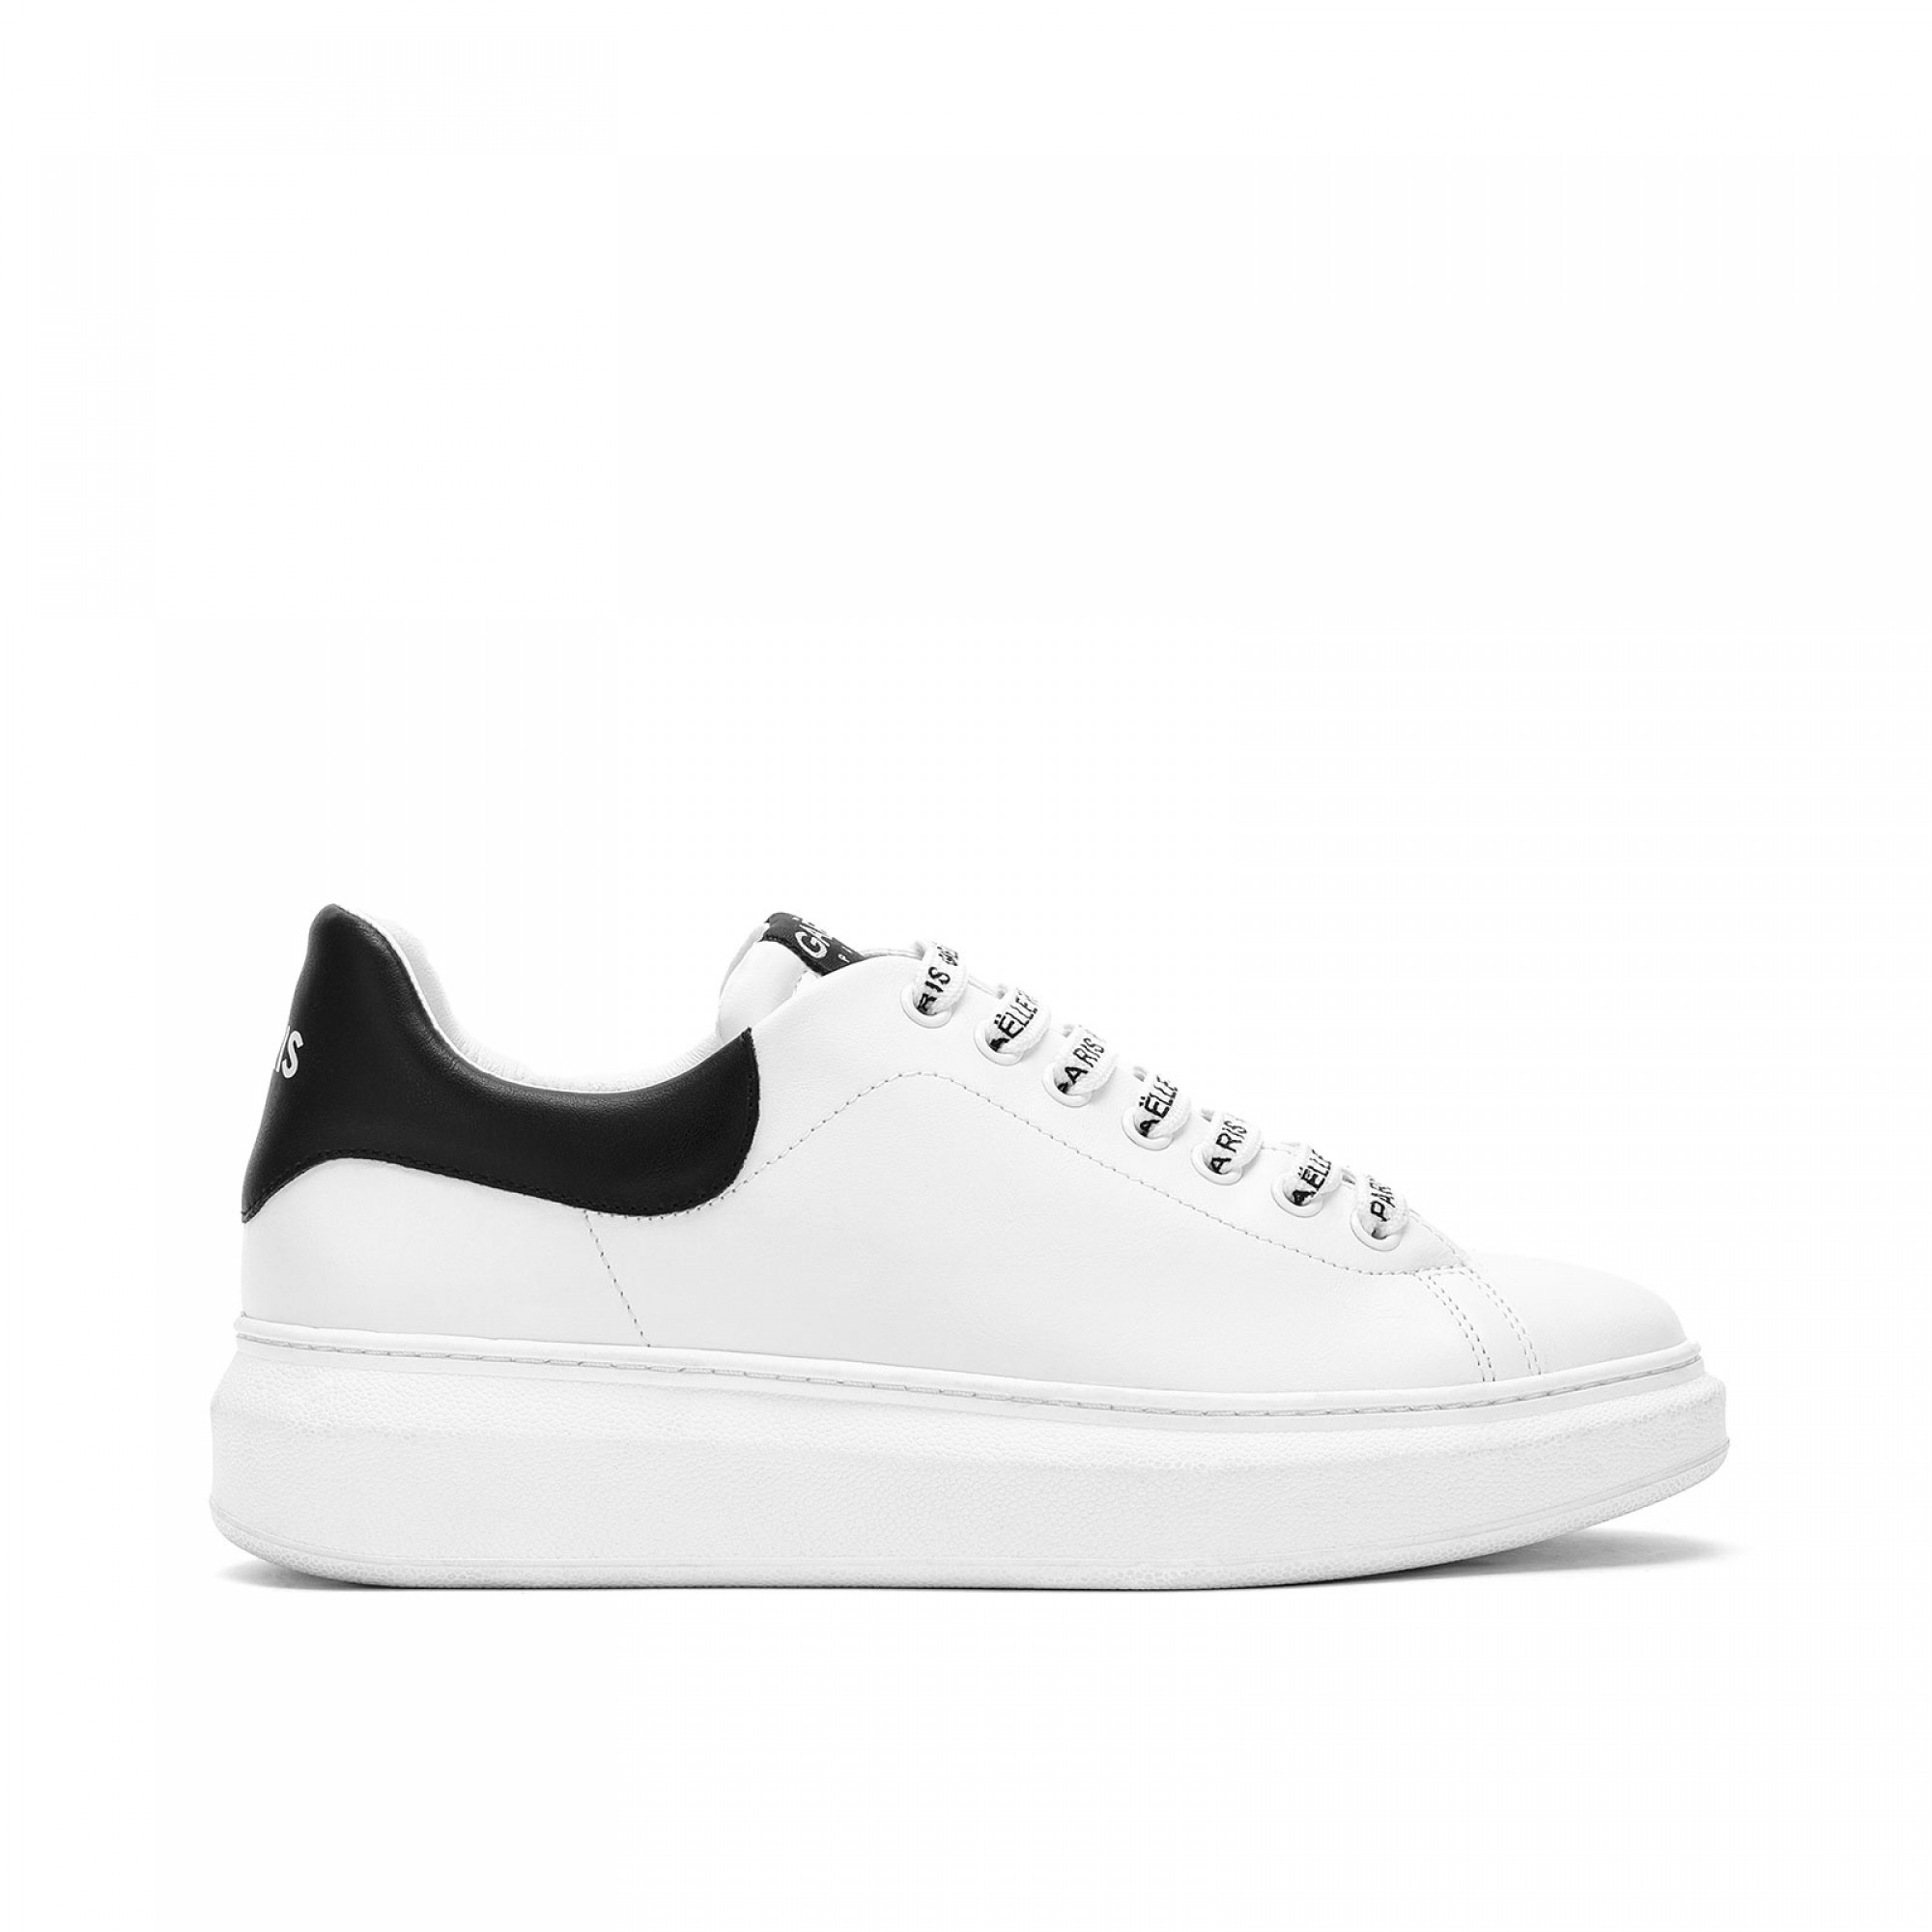 SNEAKERS DONNA - GBDS2254 - GAELLE PARIS